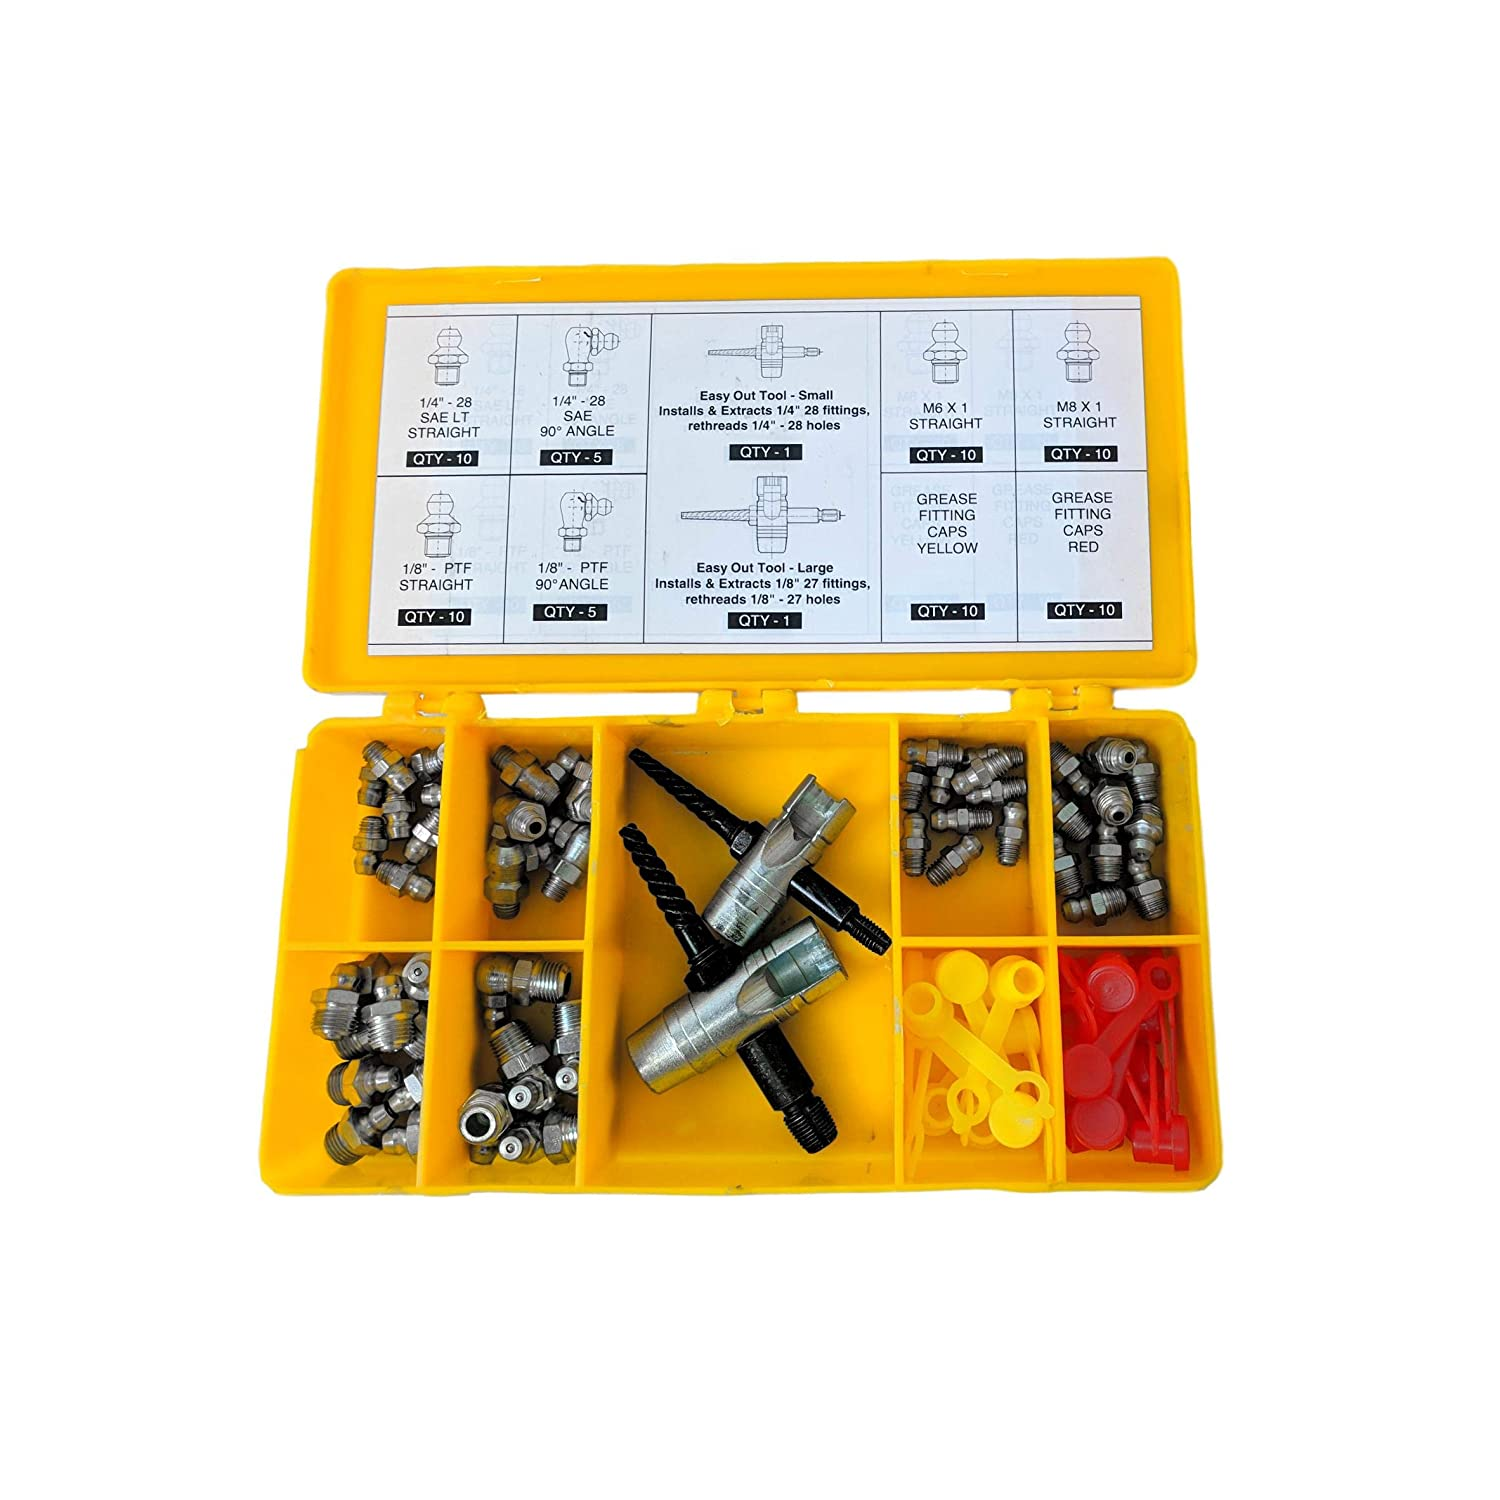 Complete Grease Fitting Replacement Kit SAE and metric Zerks multi-tools fitting caps